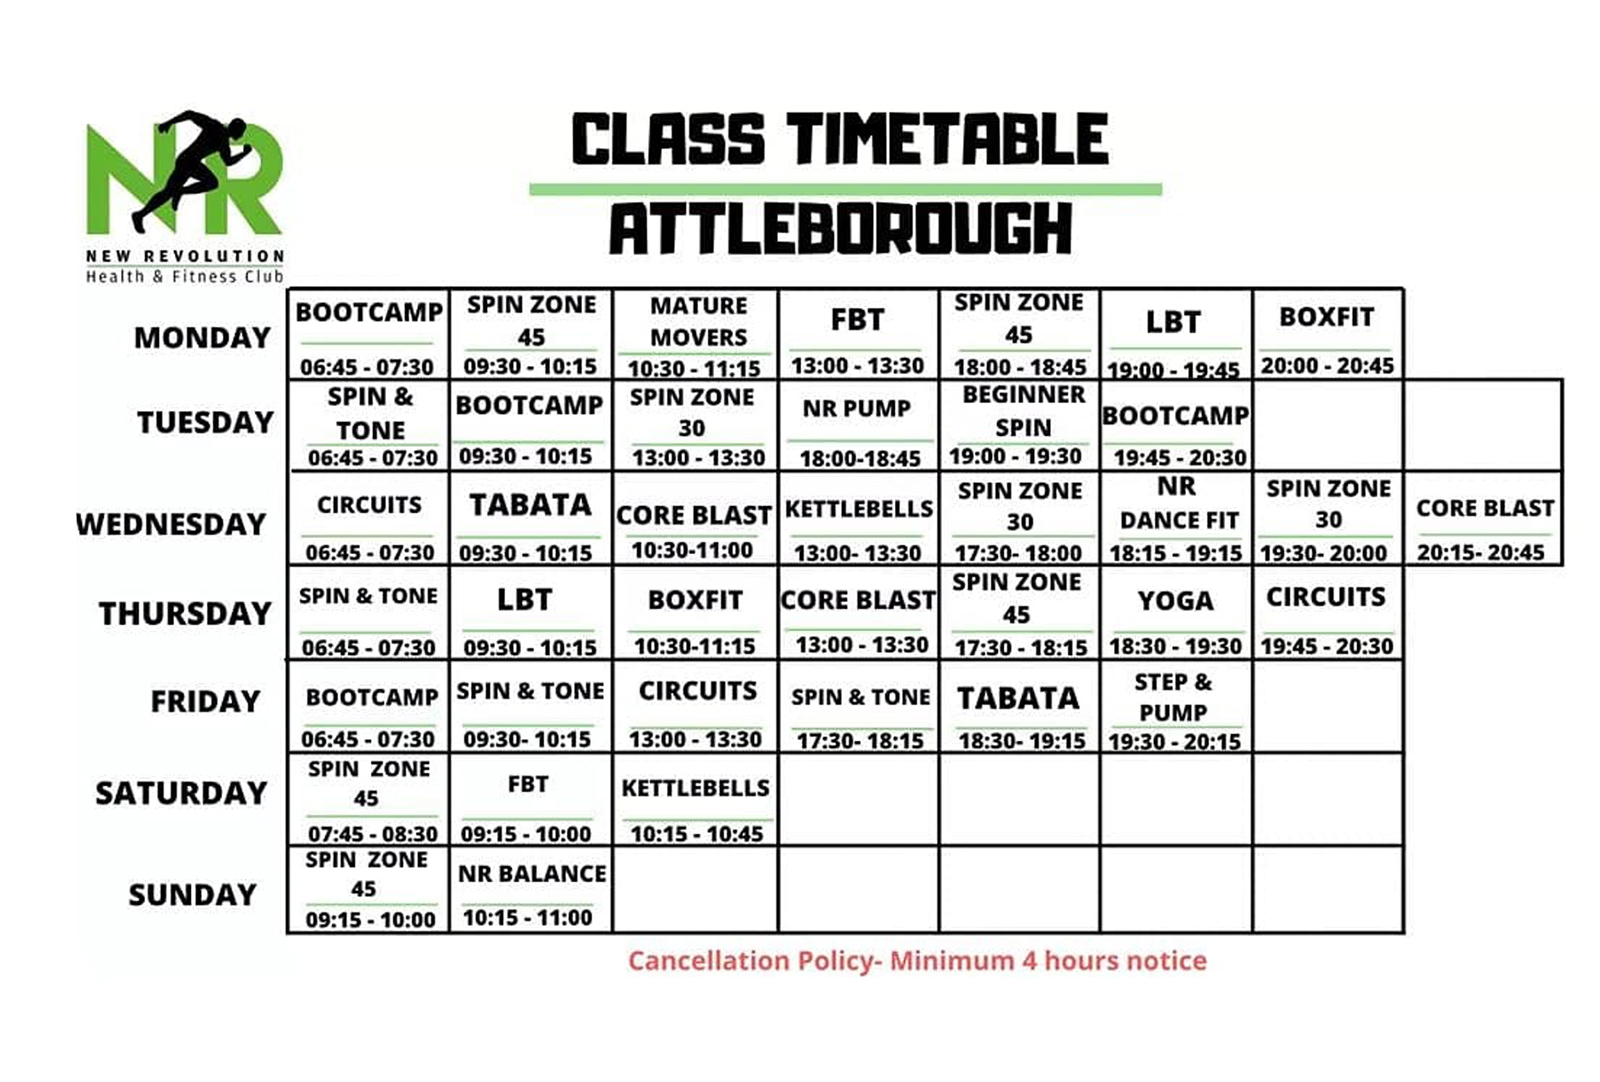 NEW Attleborough Timetable - October 2020